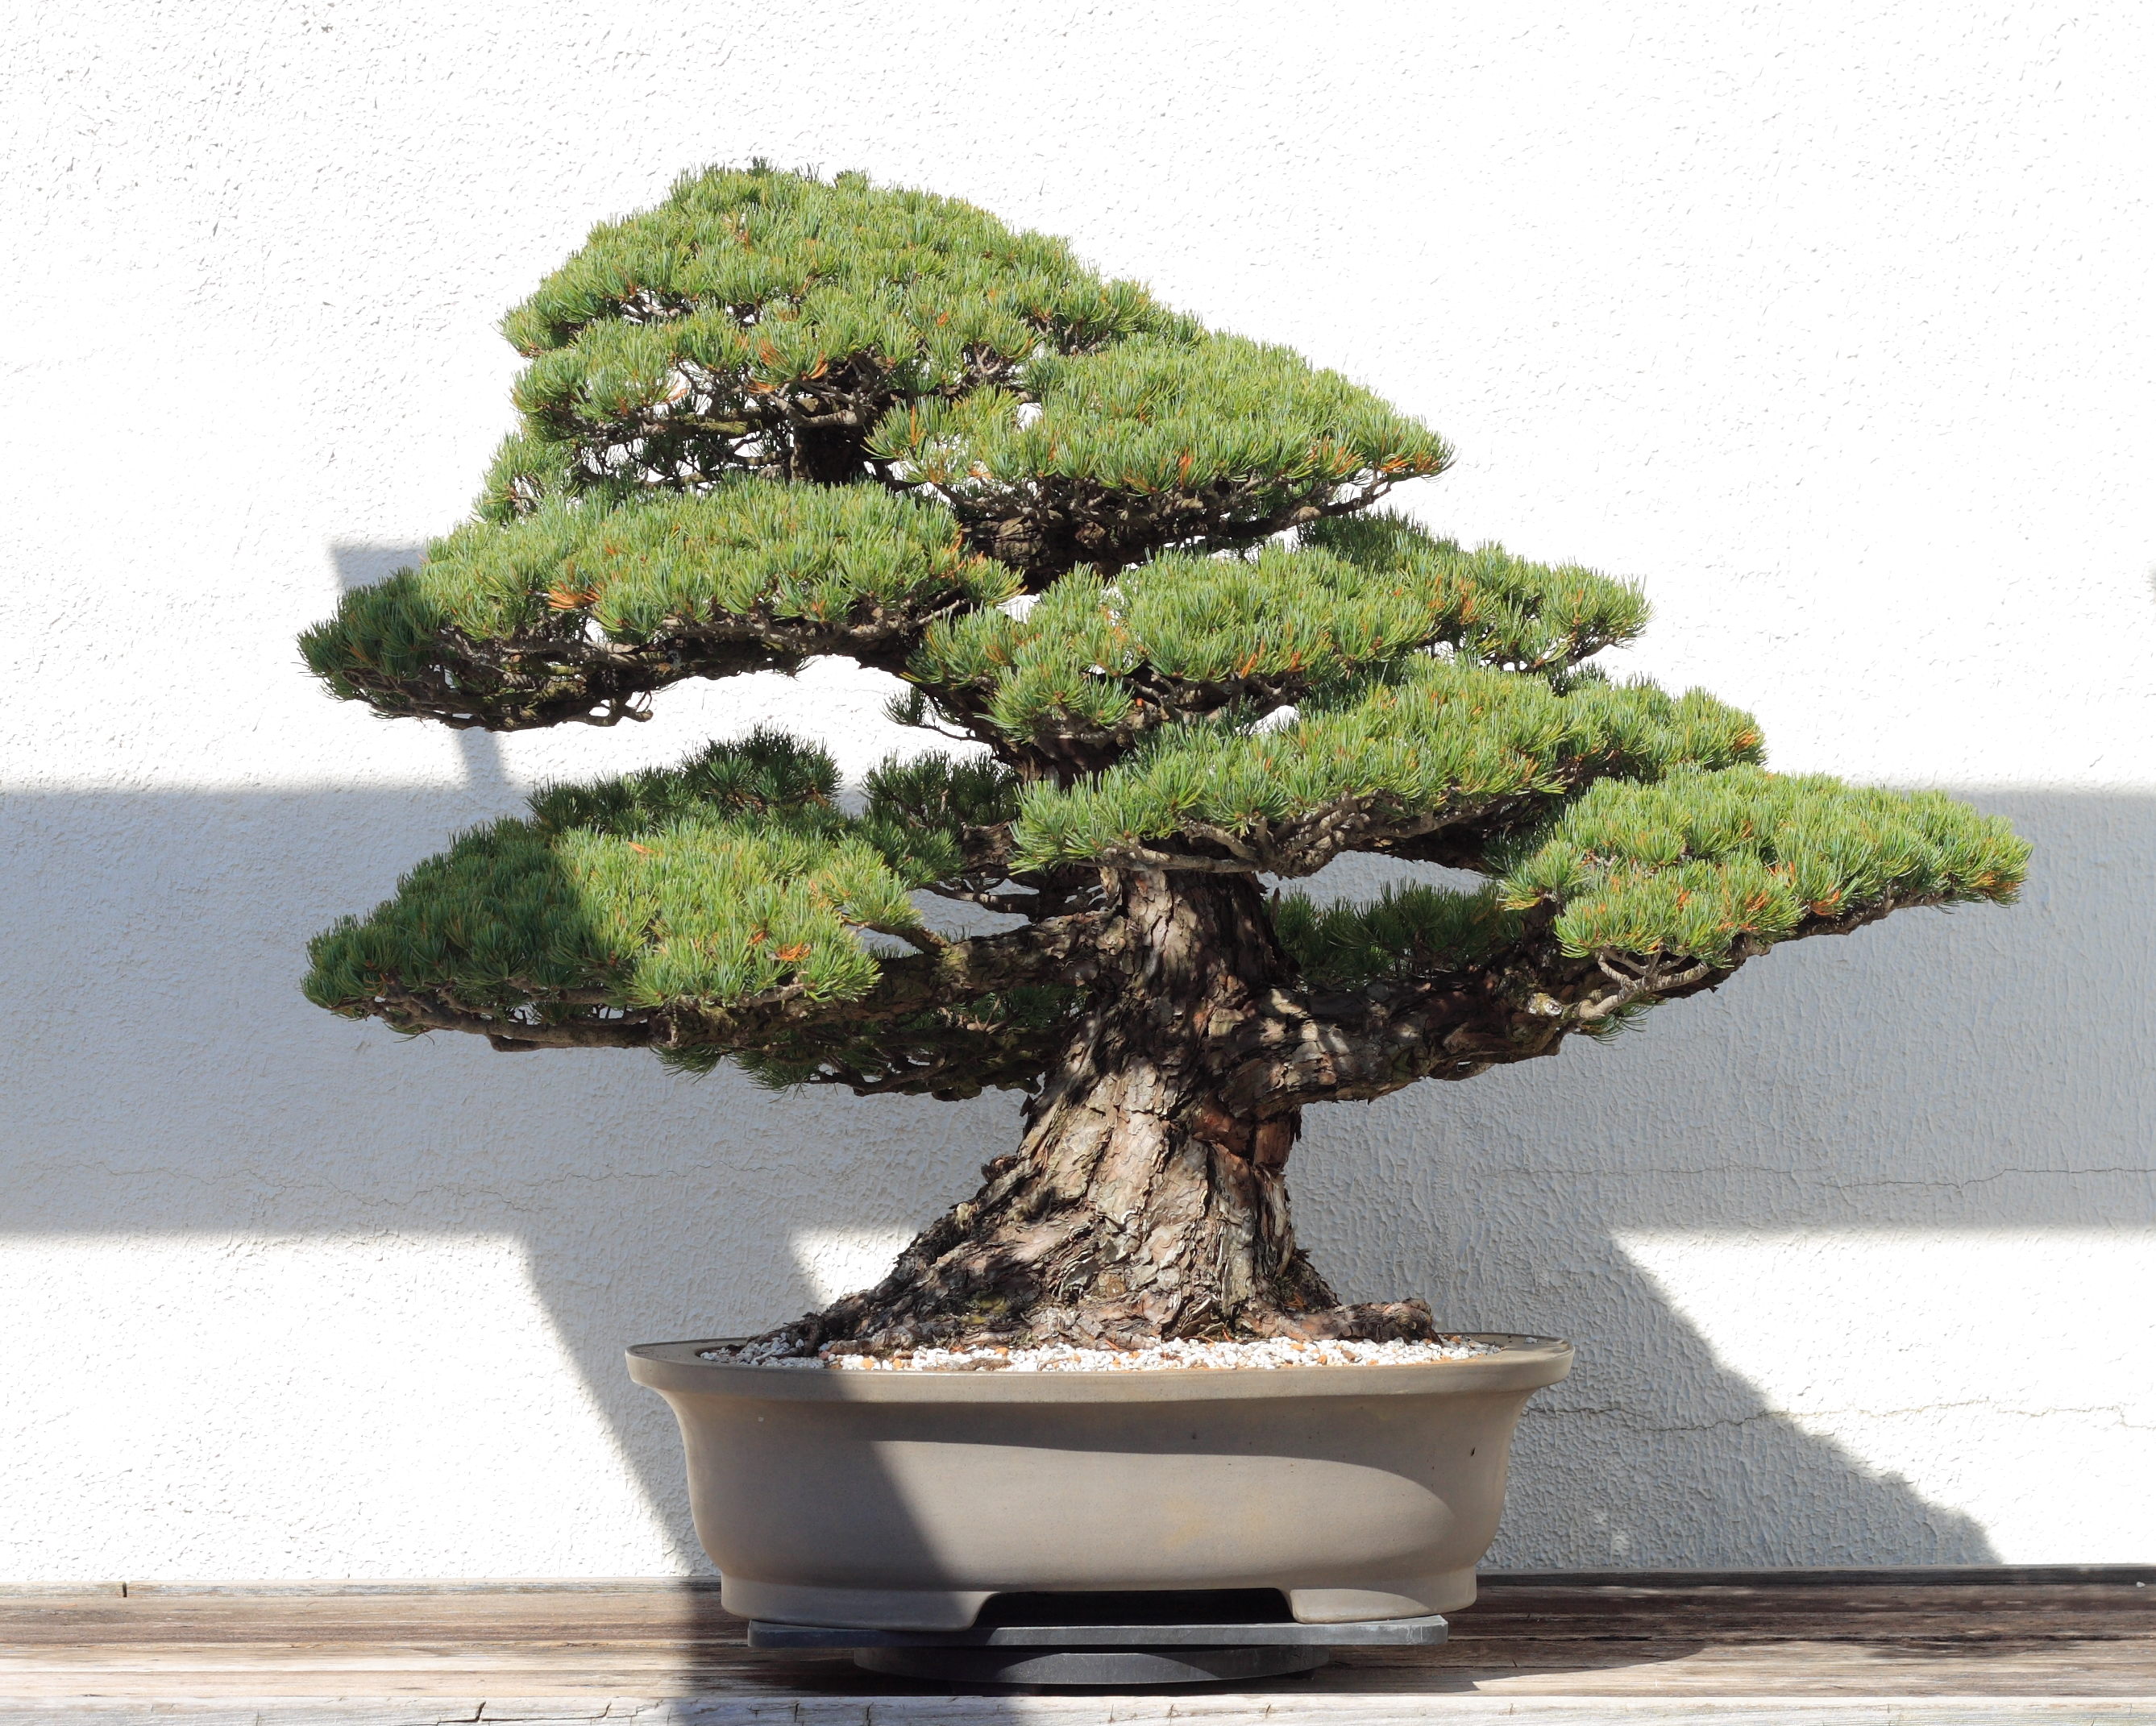 Camera Exterieur Google Home File:japanese White Pine Bonsai 81, October 10, 2008.jpg